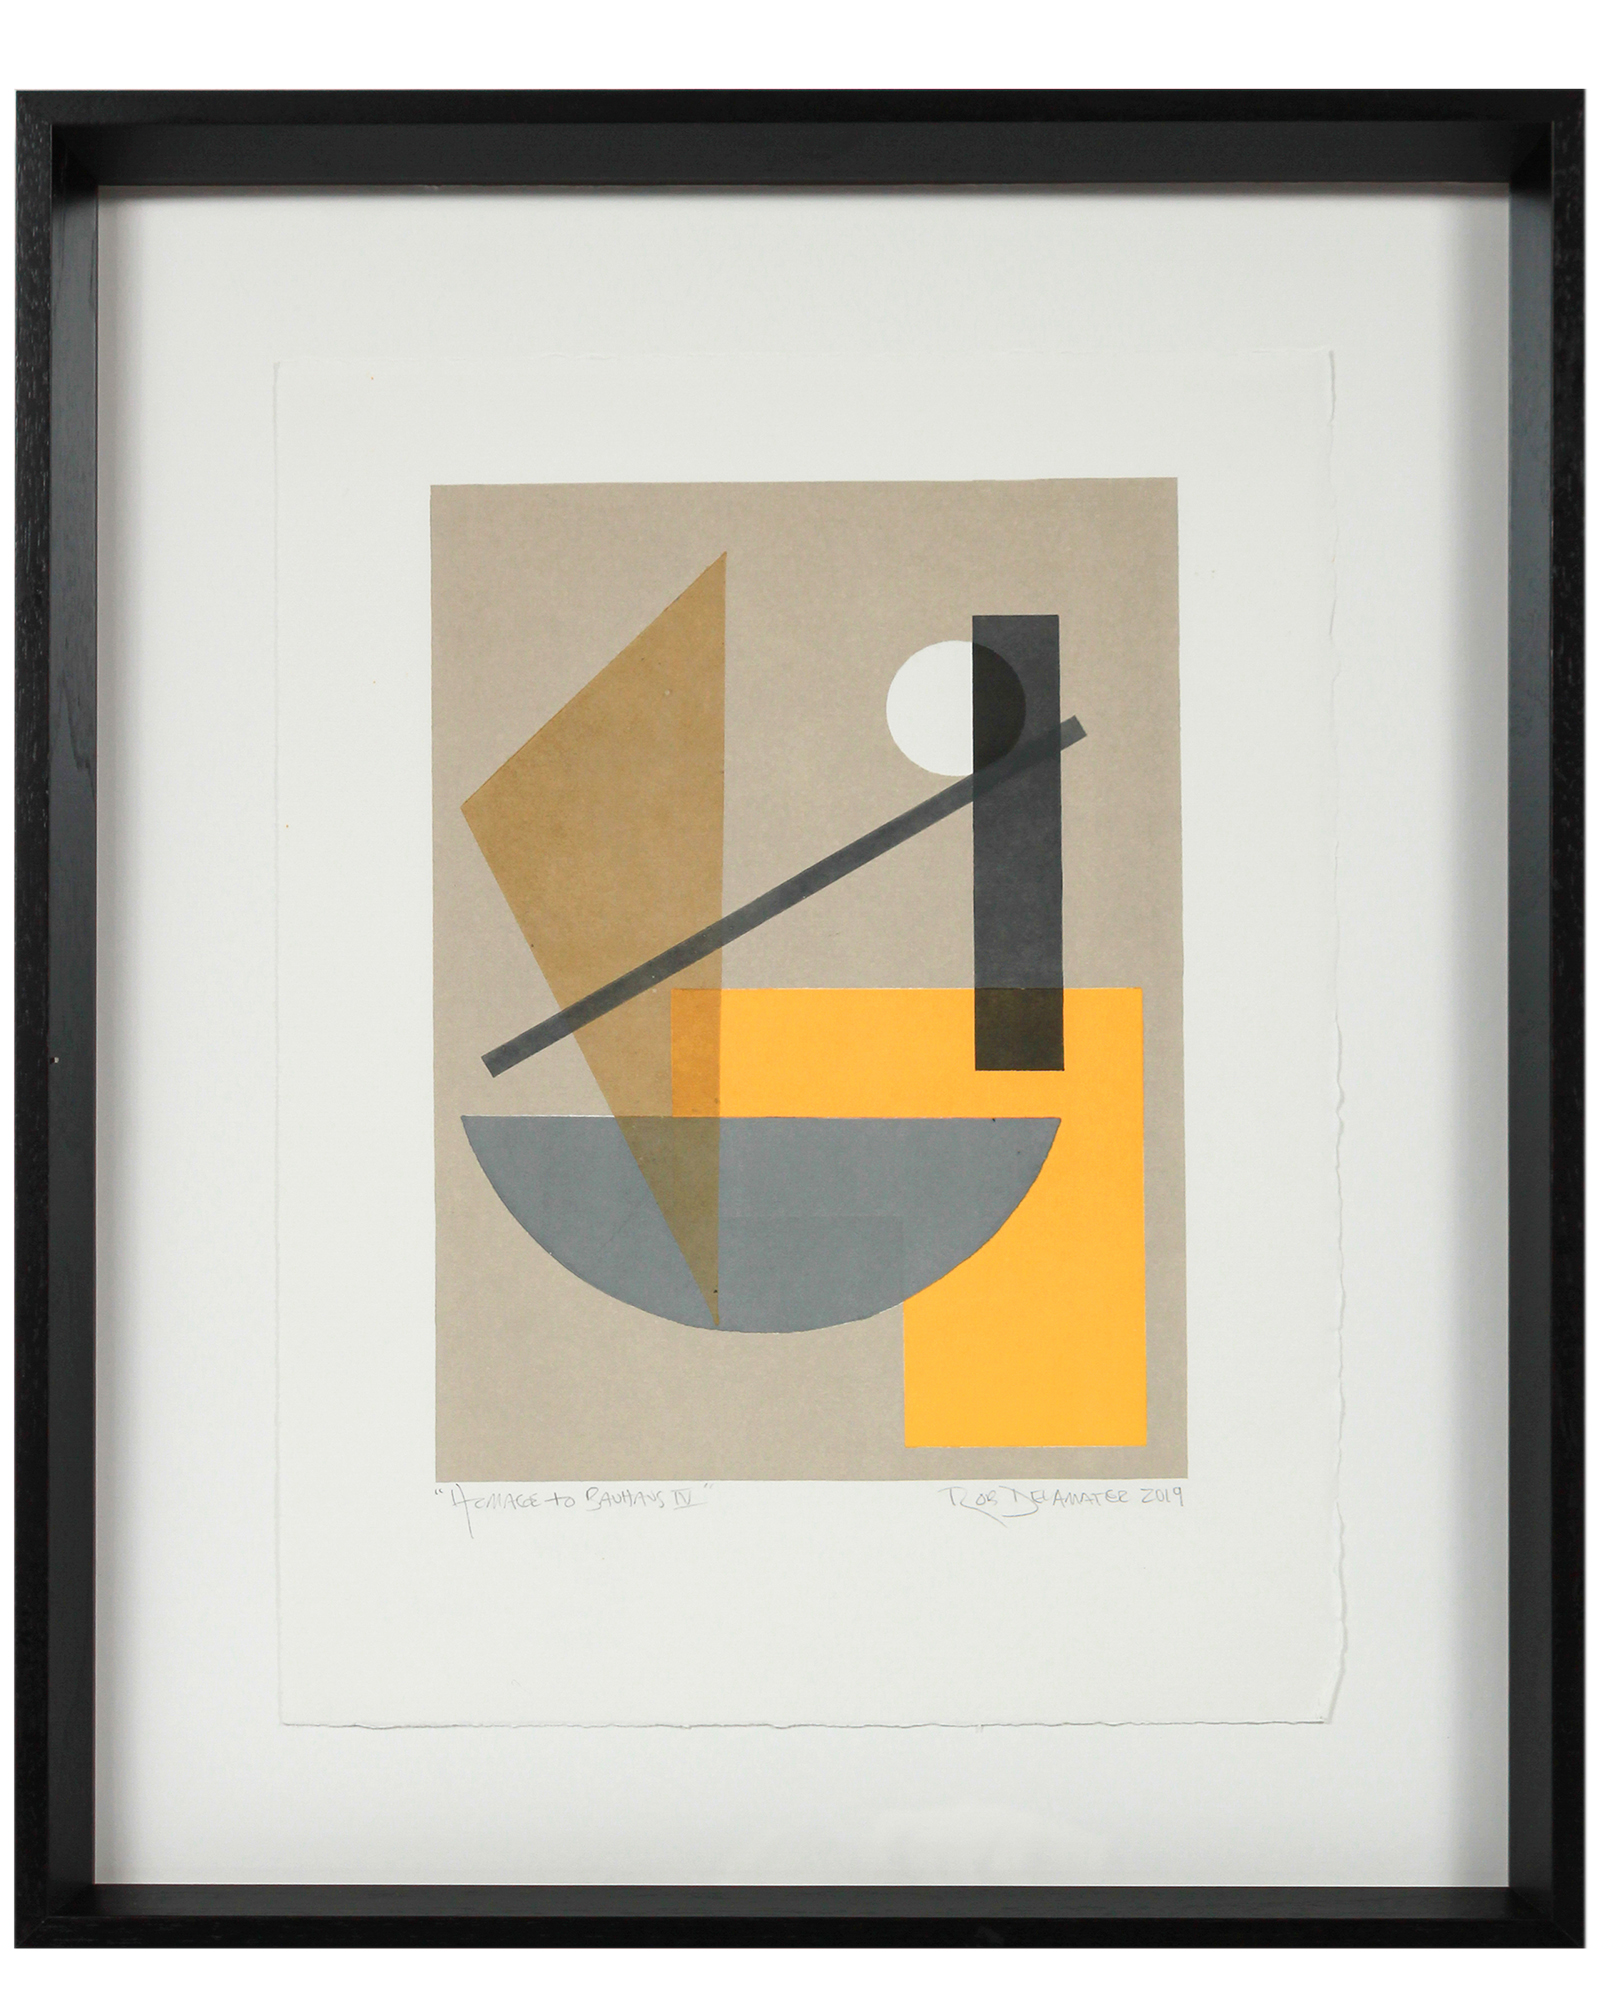 """Homage to Bauhaus I"" by Rob Delamater,"